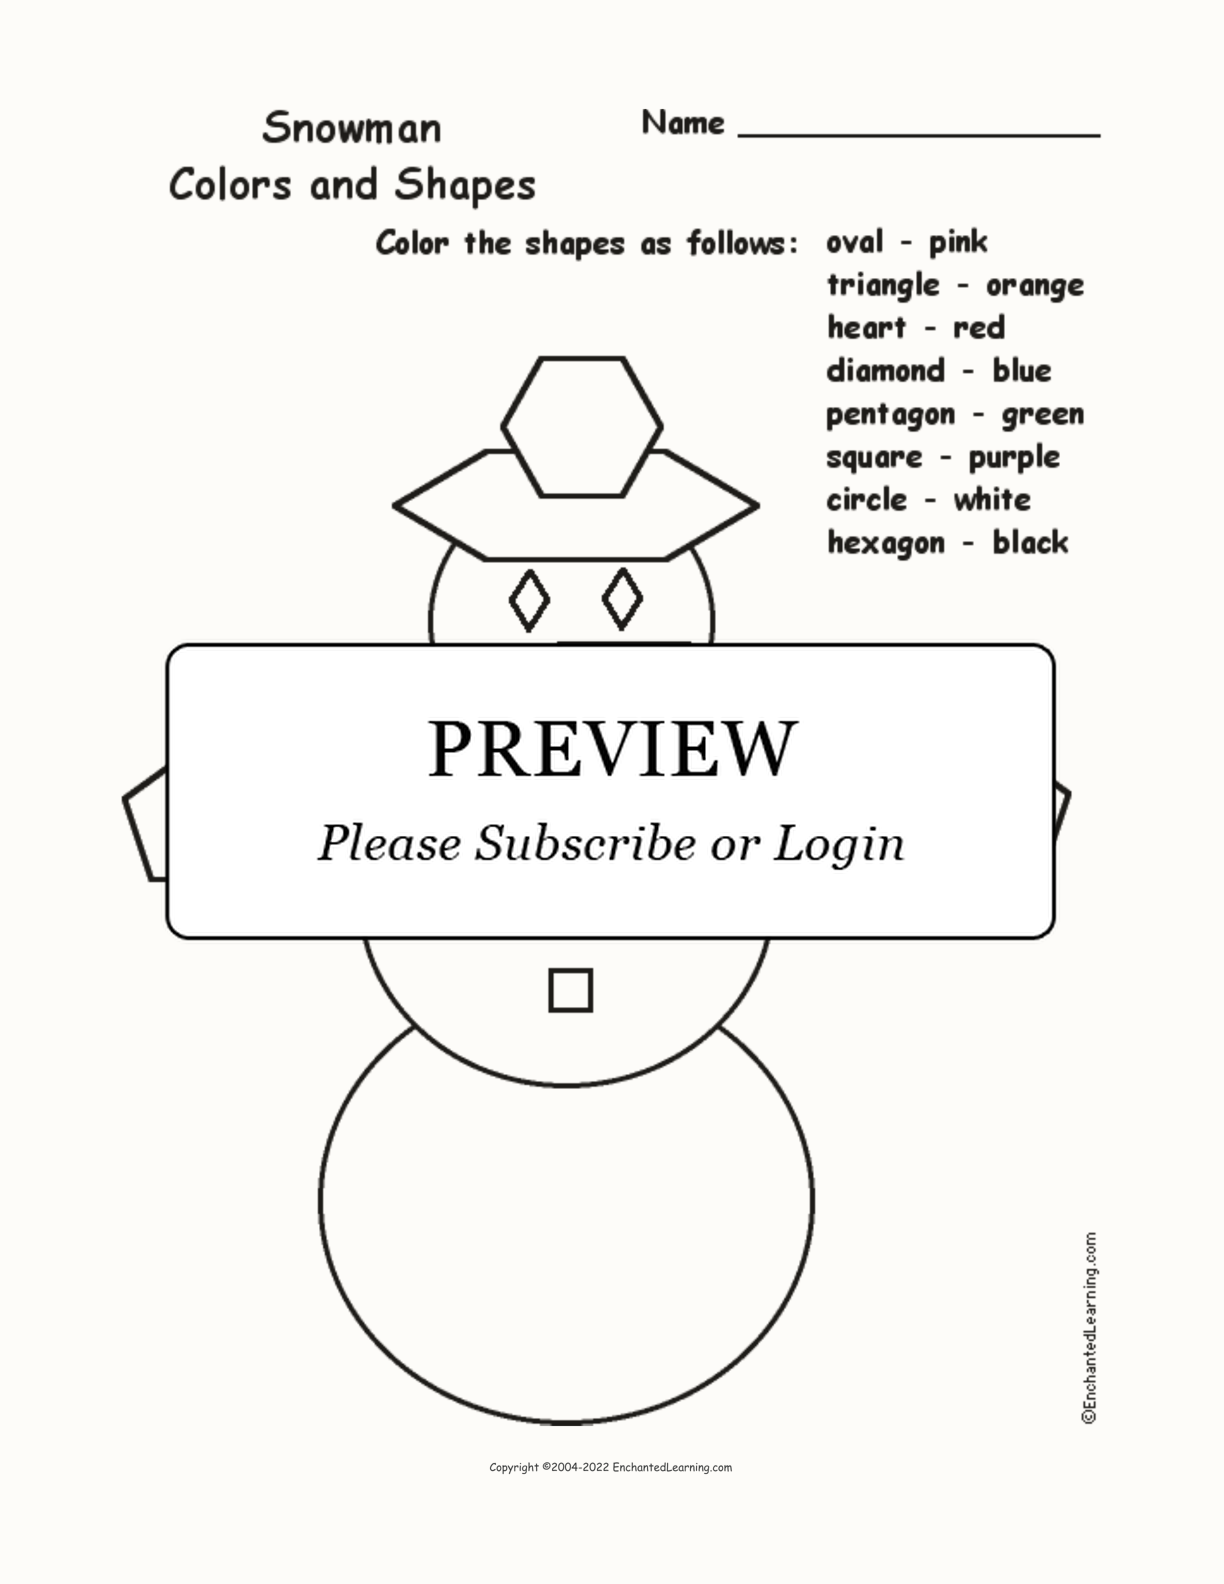 Snowman: Colors and Shapes interactive worksheet page 1